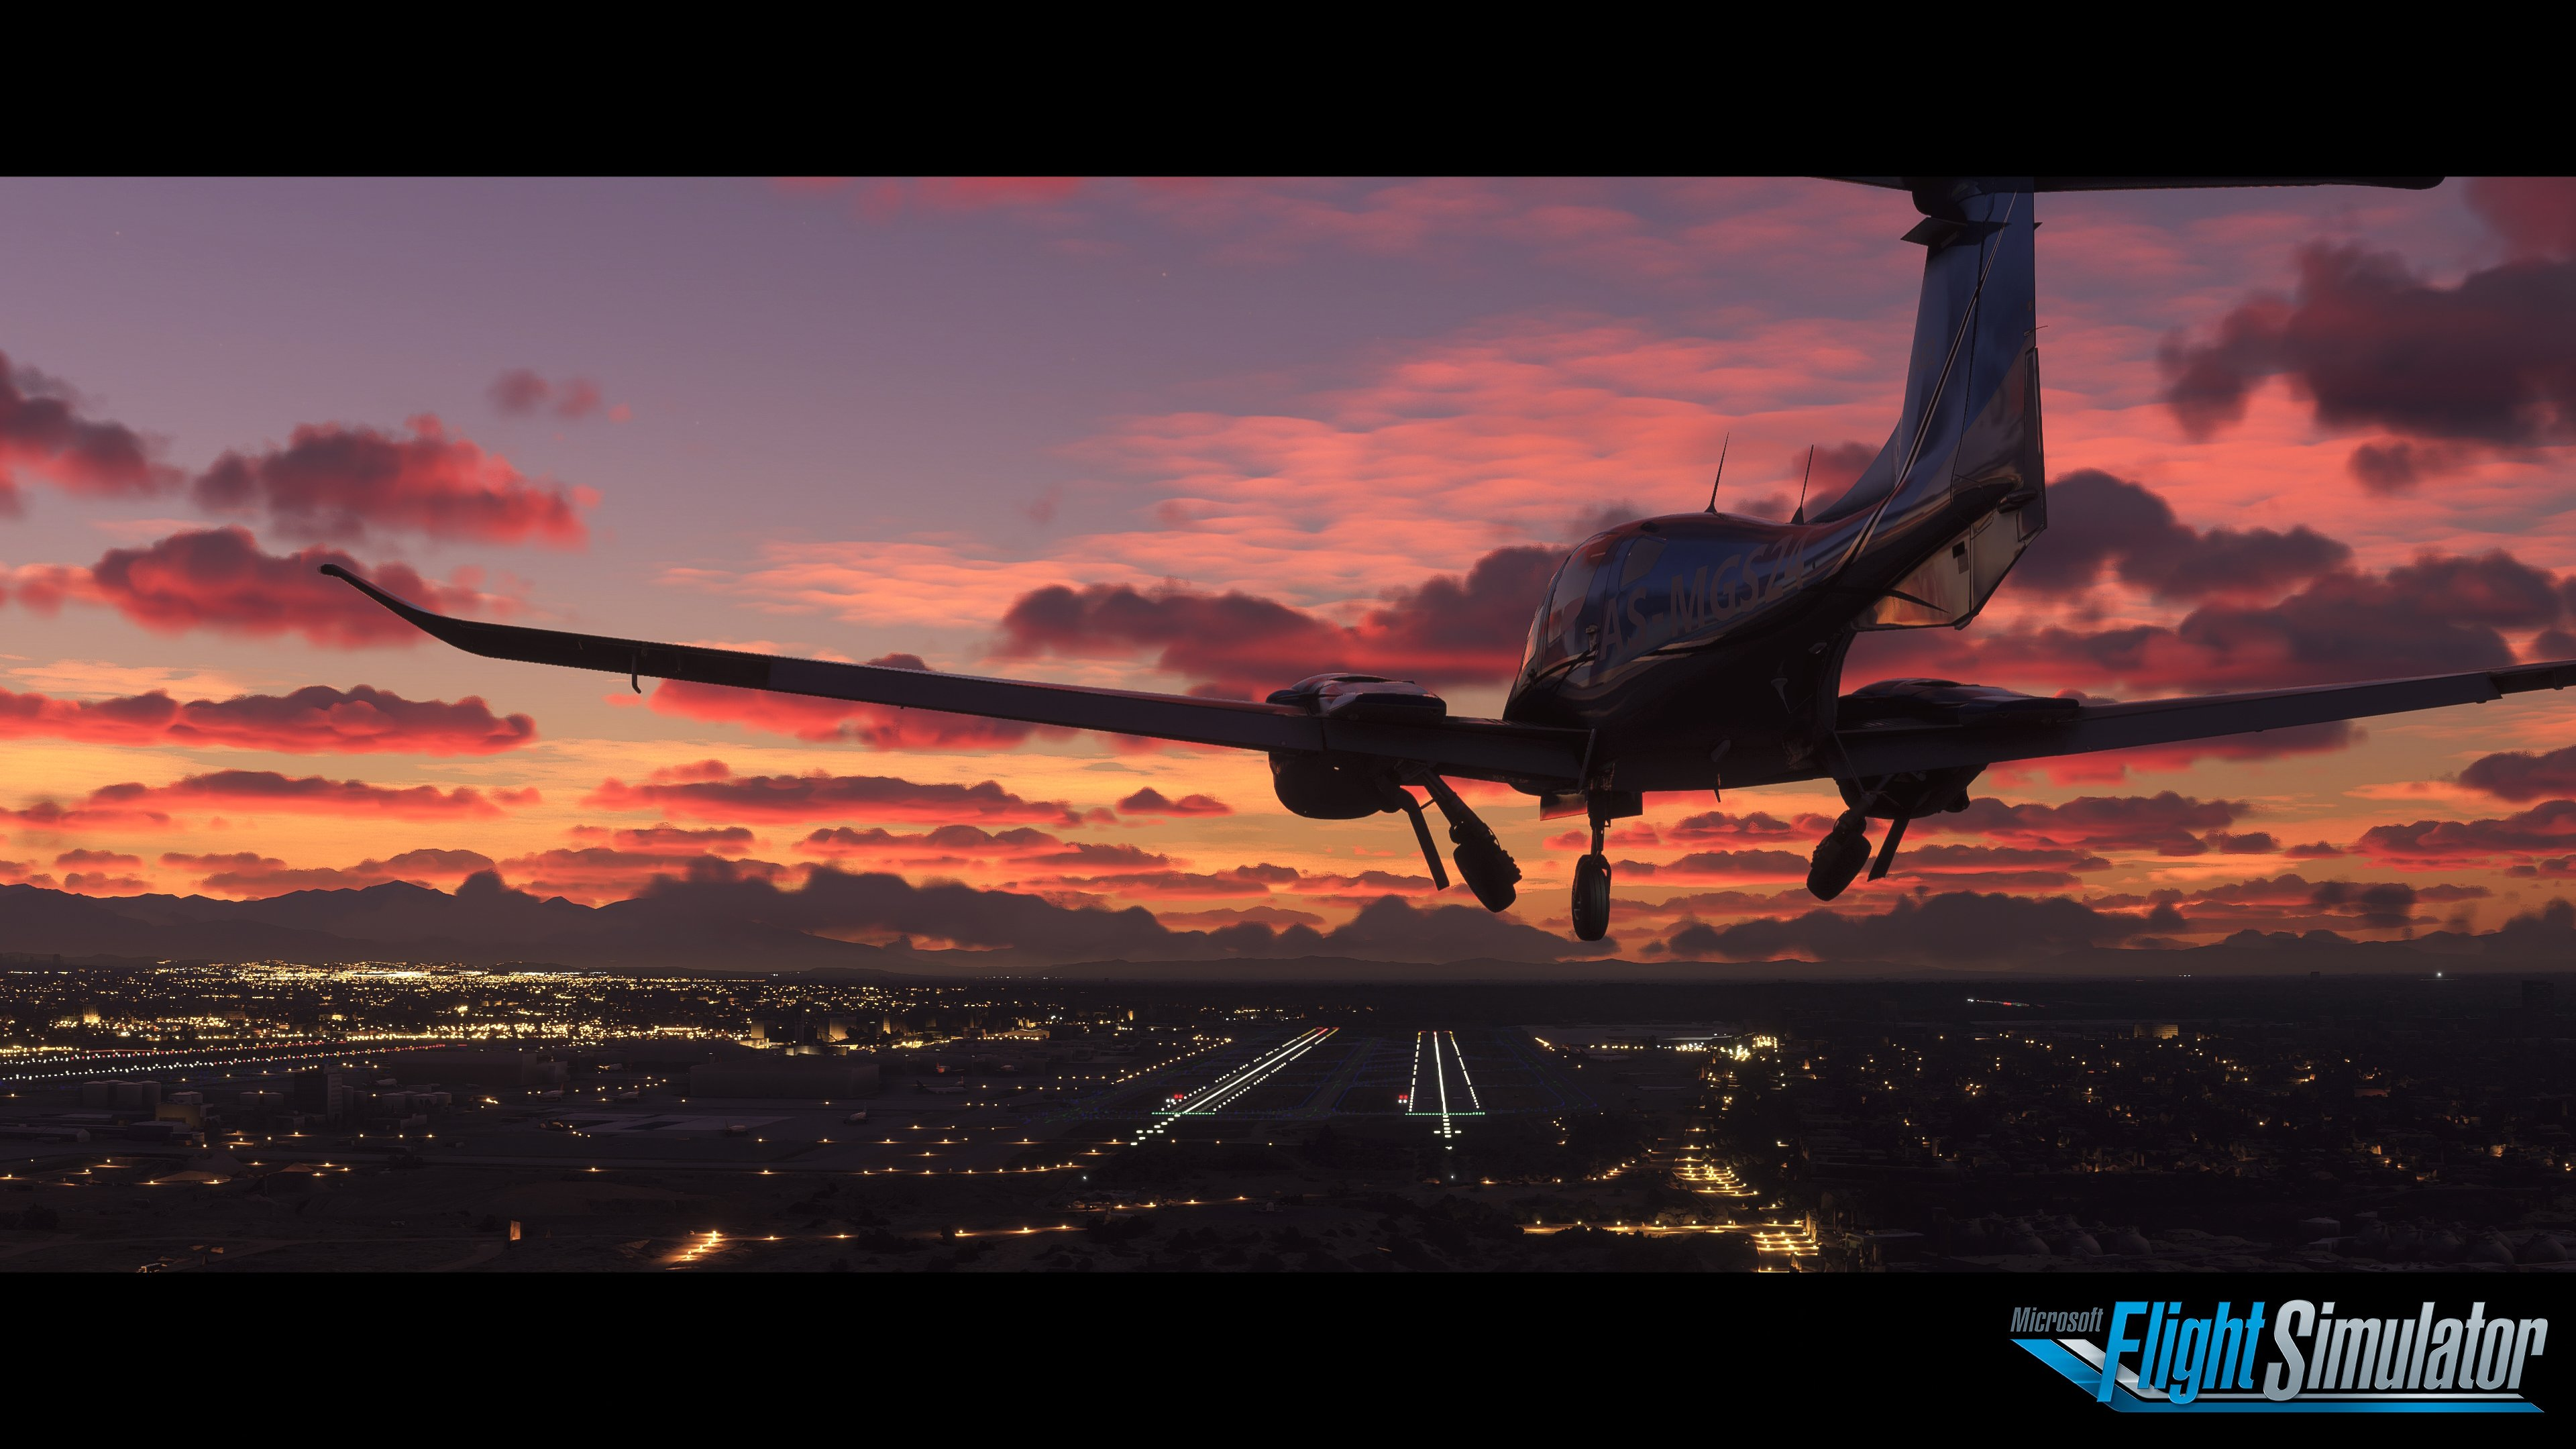 Microsoft Flight Simulator #XboxE3